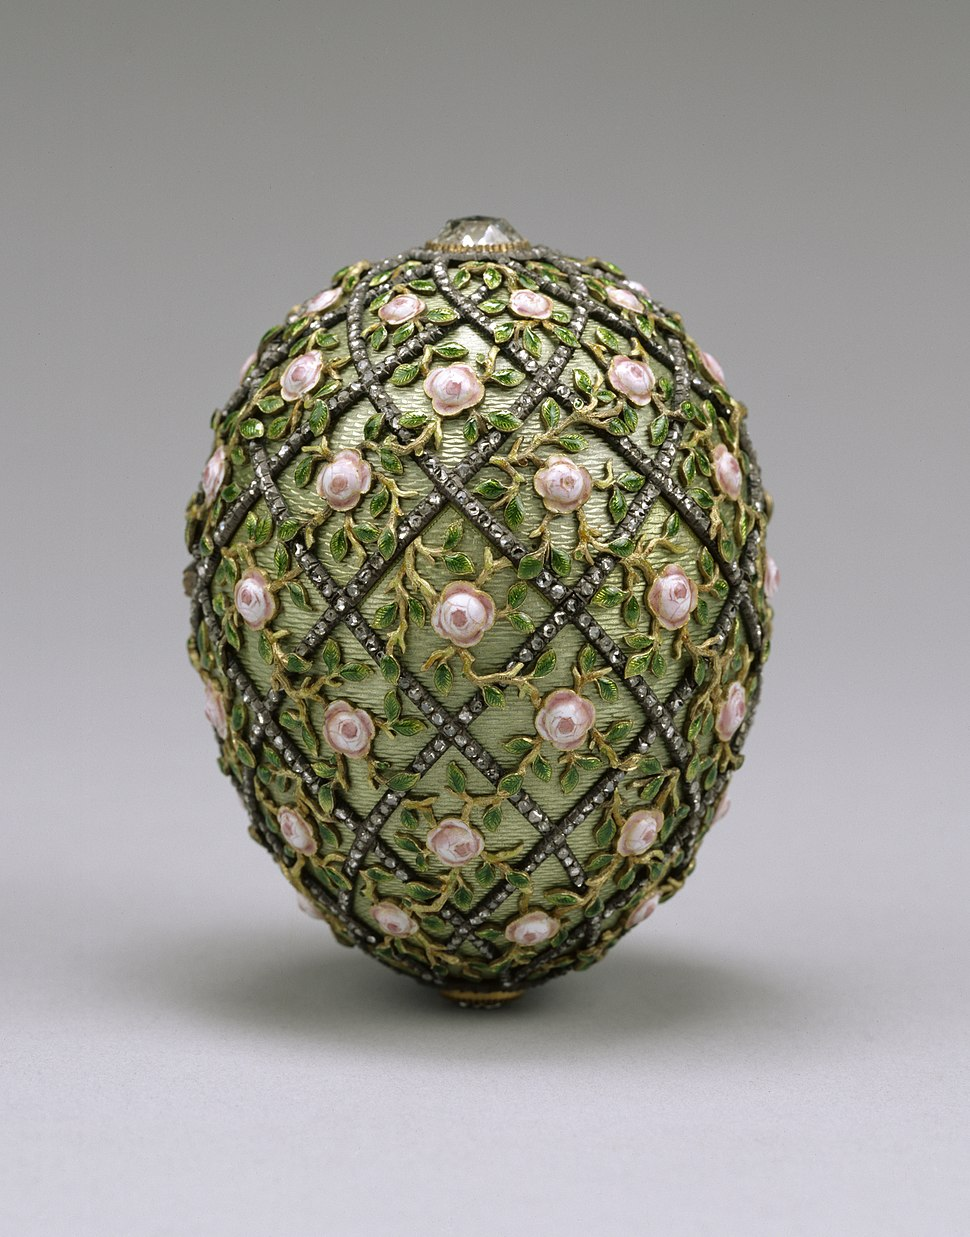 House of Fabergé - Rose Trellis Egg - Walters 44501